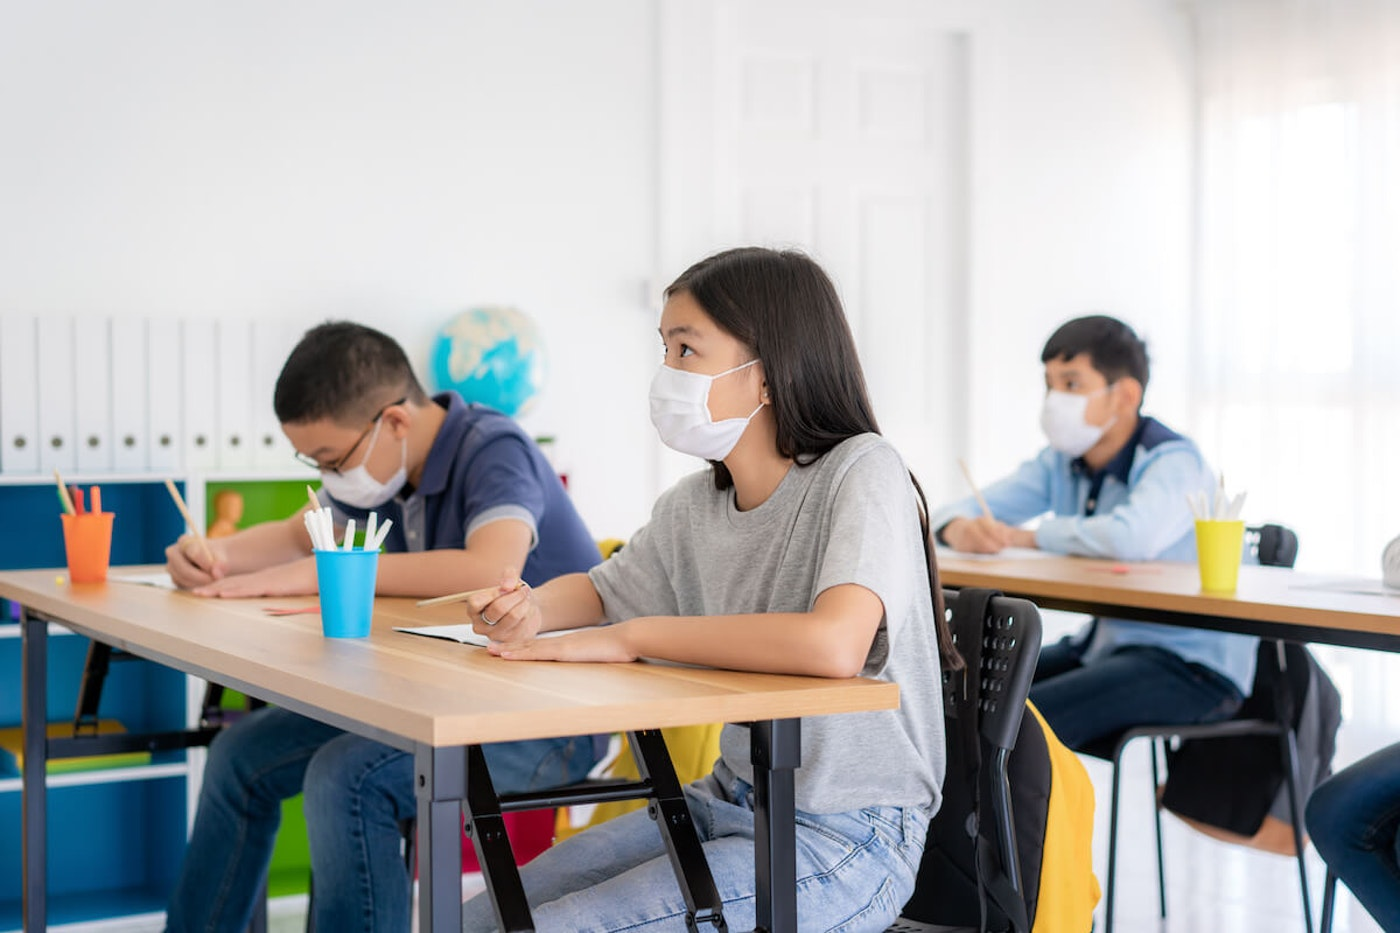 Teachers with underlying health conditions express concerns over being forced back to teach in their classrooms.  (Shutterstock image)